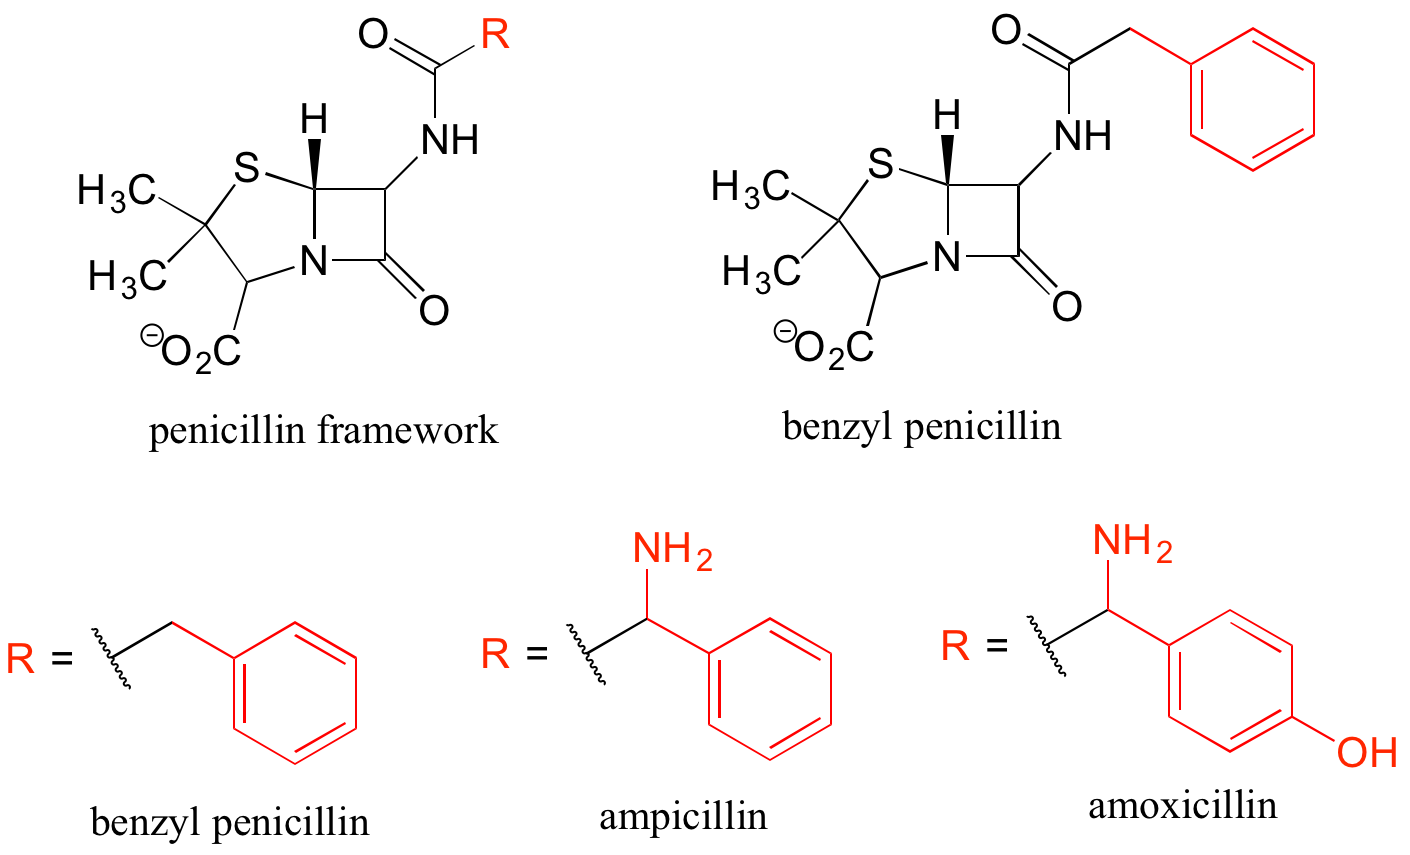 Studying drawing structure. Functional groups and